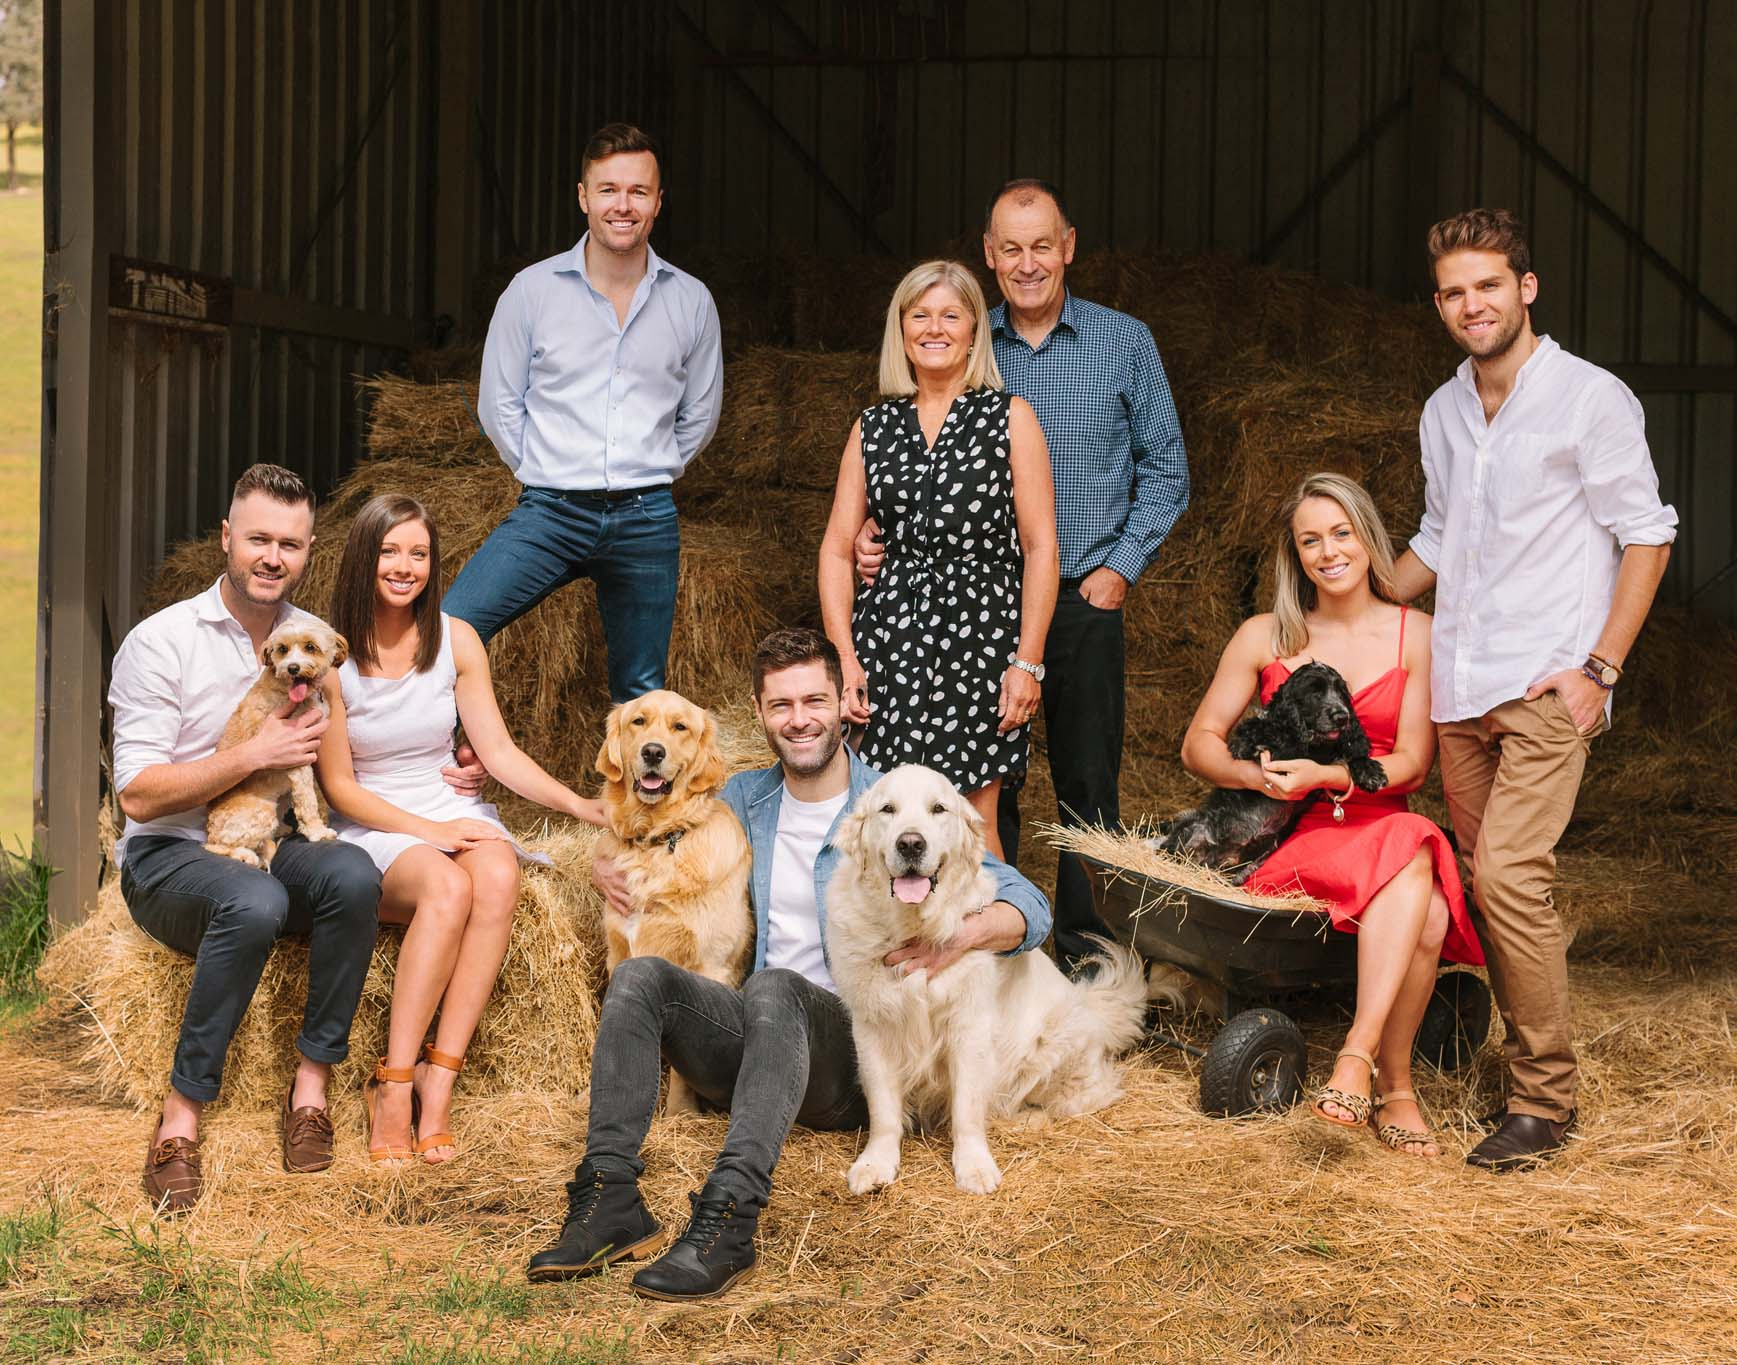 Family photo in a barn with dogs